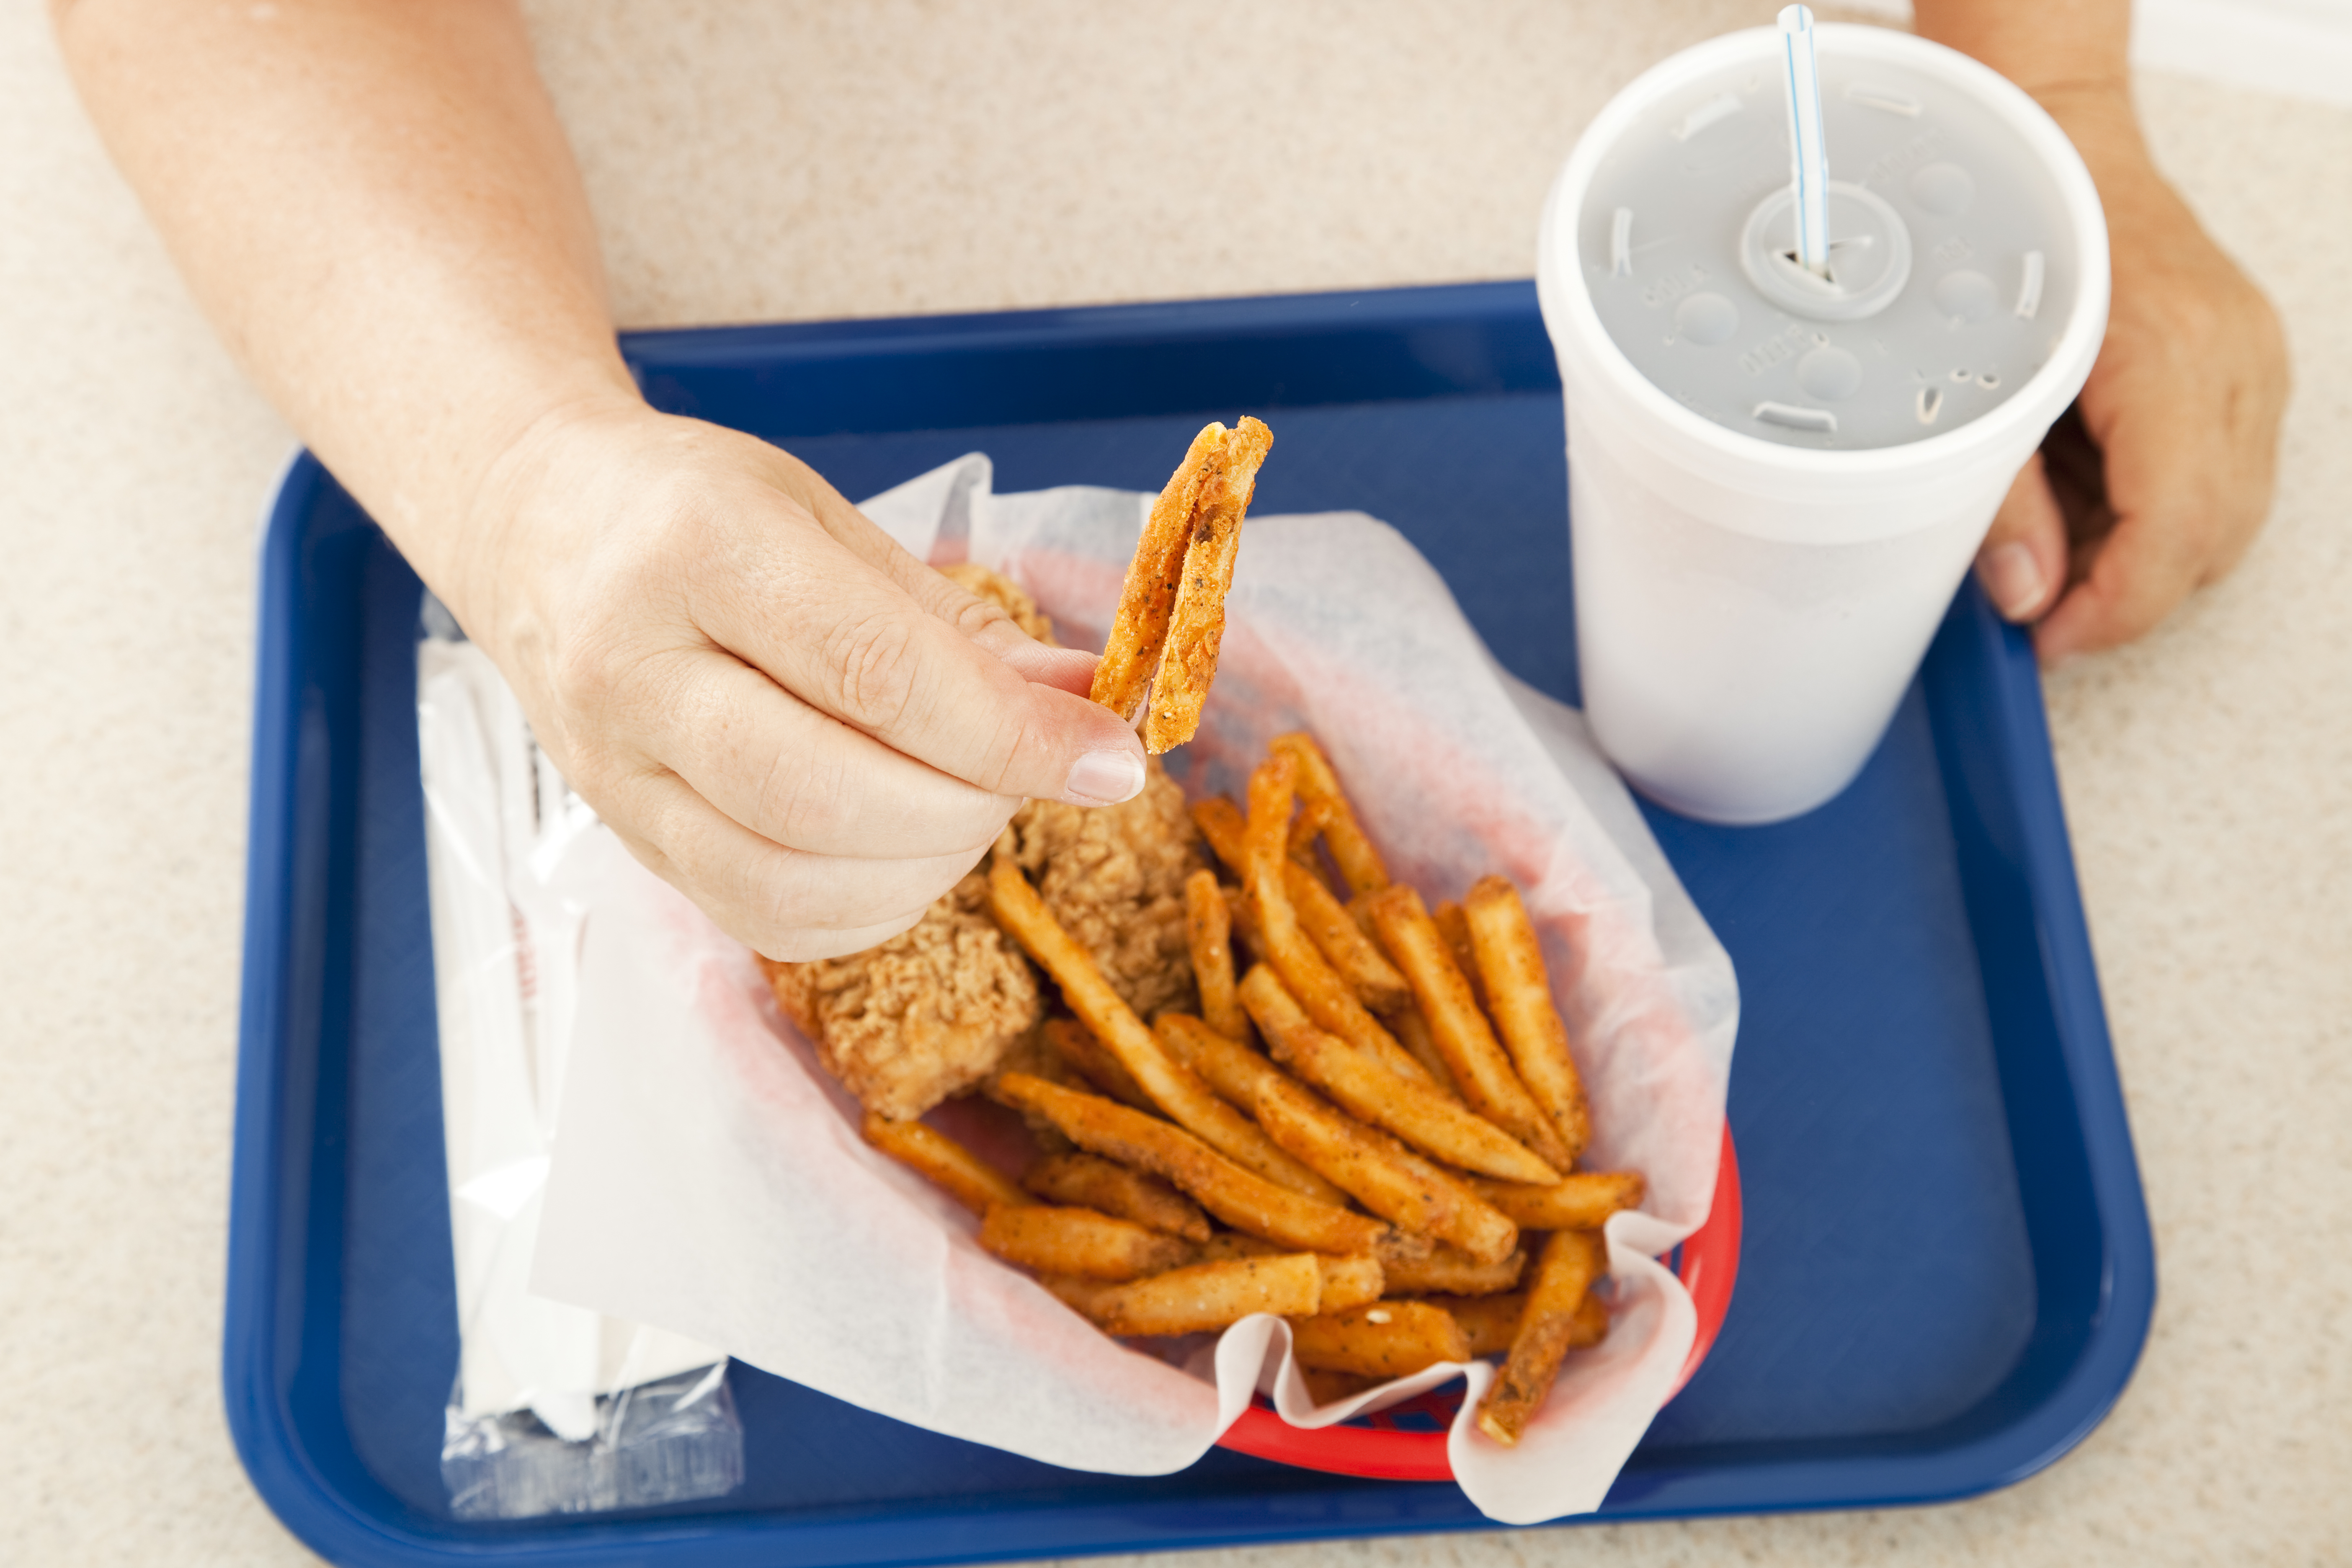 A plate of greasy fast food, with the customer holding up a greasy french fried potato to the camera.  Focus on the hand and the fry.